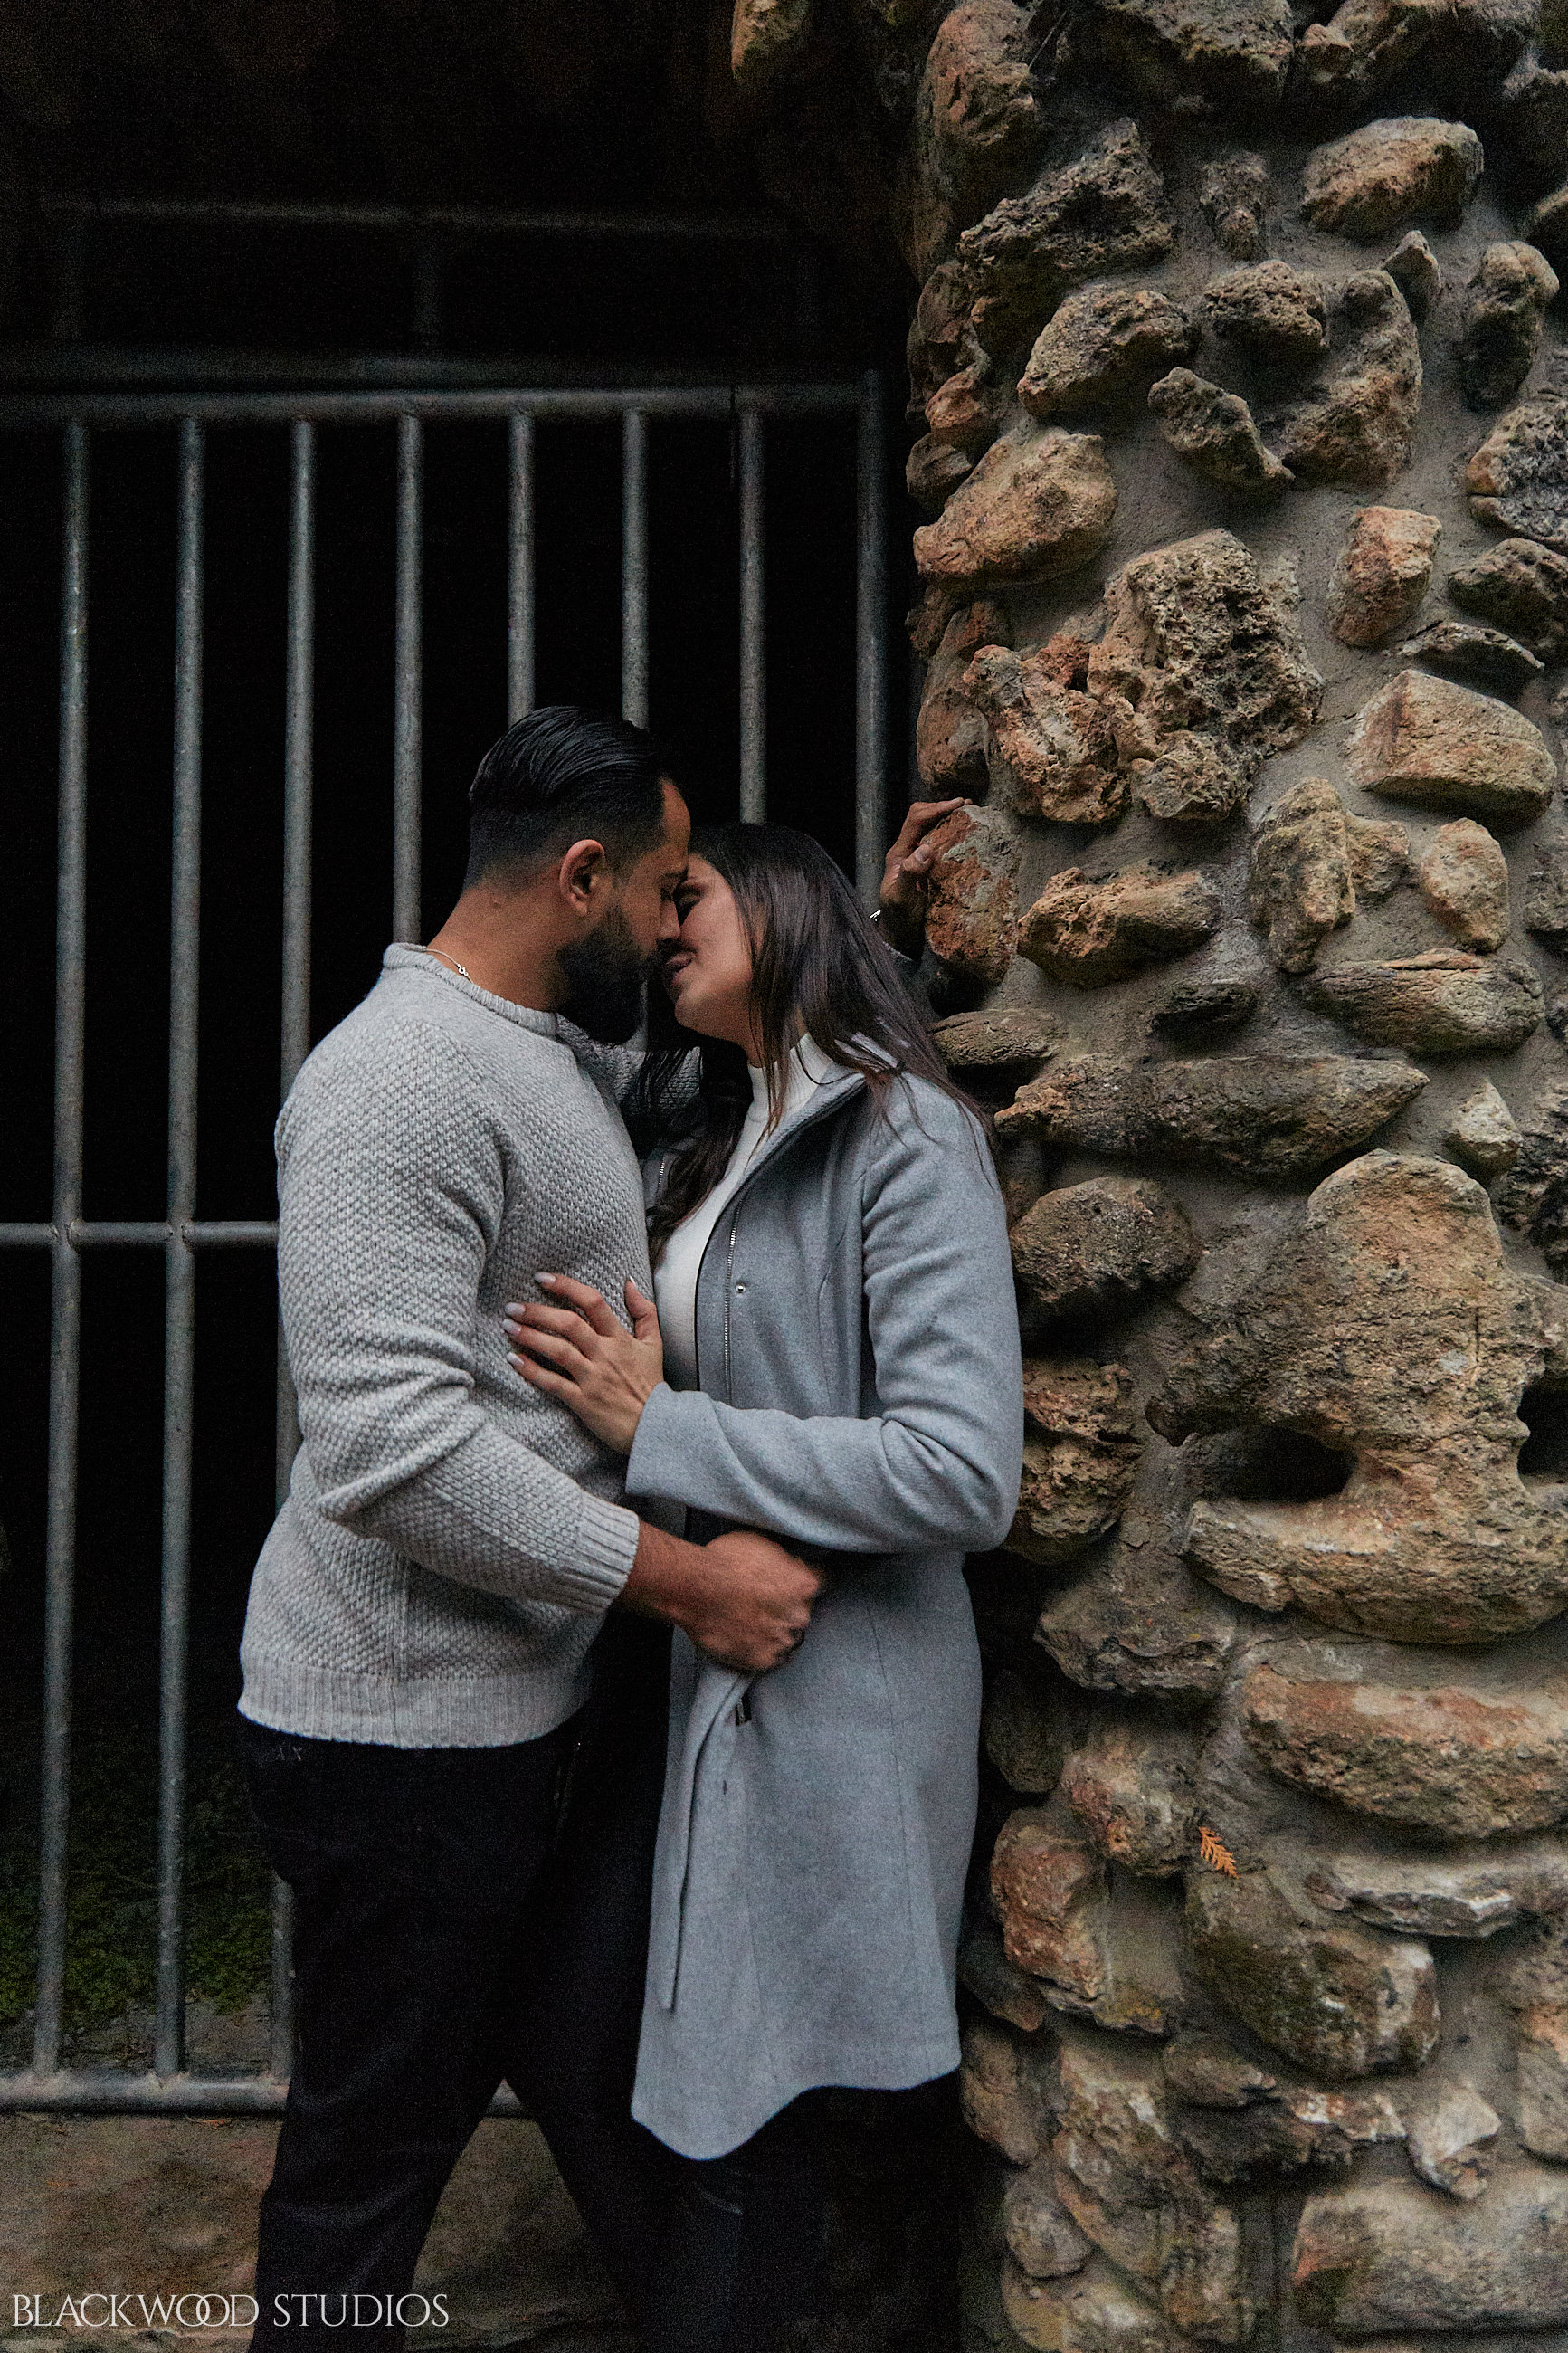 Blackwood-Studios-20181028182036-Farah-and-Zain-Engagement-photography-Belfountain-Conservation-Area-Caledon-Ontario.jpg